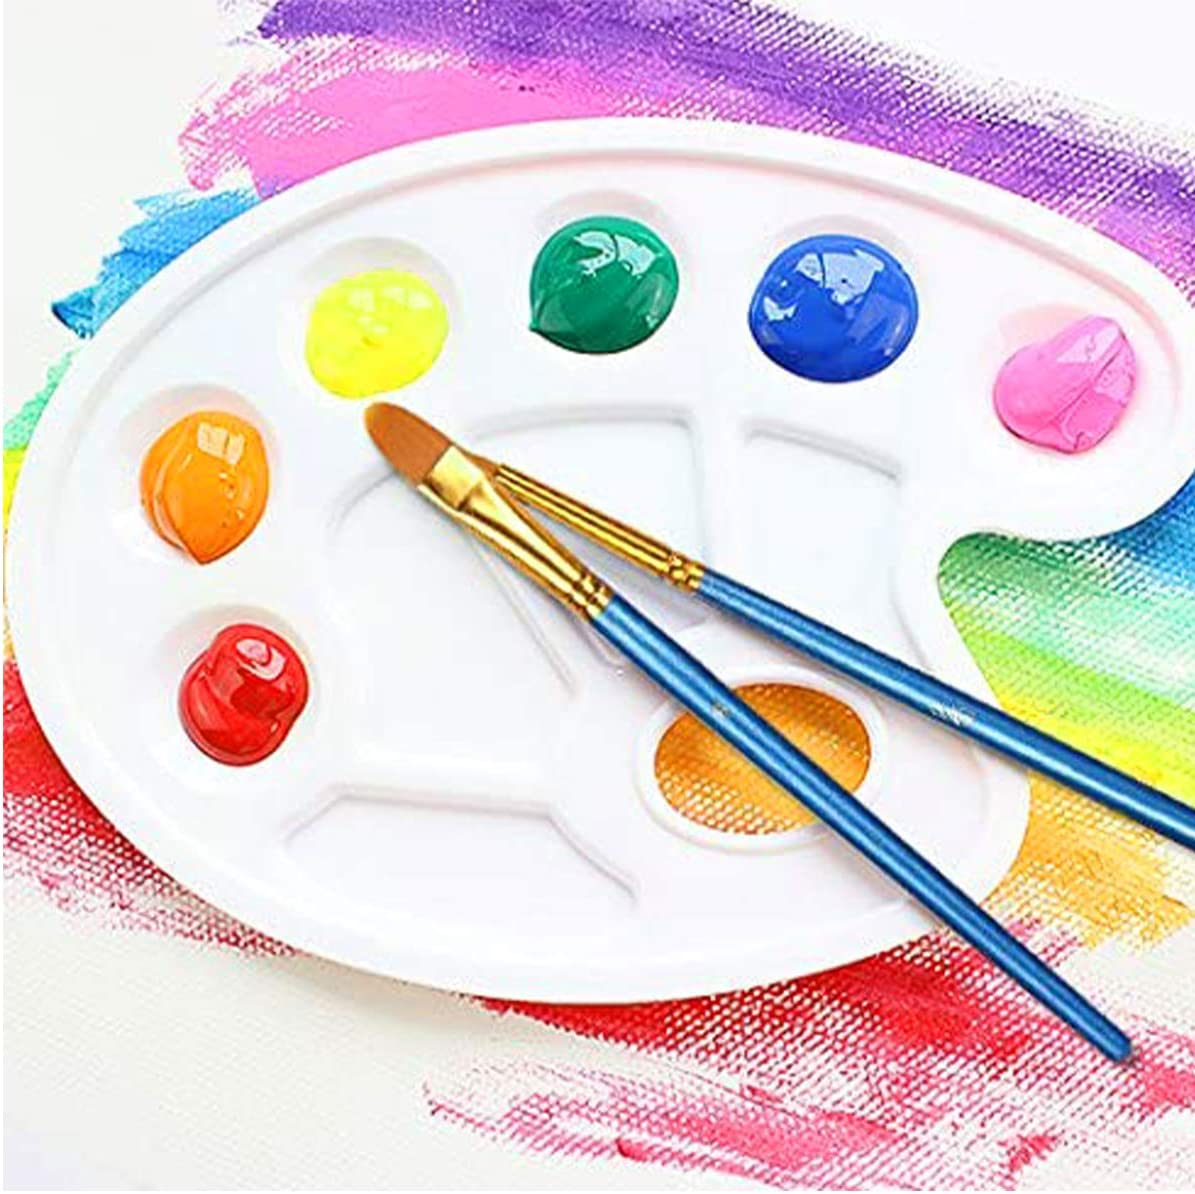 Beginner Kids Arts Crafts Supplies 12Pcs Artist Paintbrushes//2 Color palettes for Acrylic Oil Watercolor Fine Detail Miniature Acrylic Paint Brushes Set Rock Painting Kit Body Face Painting